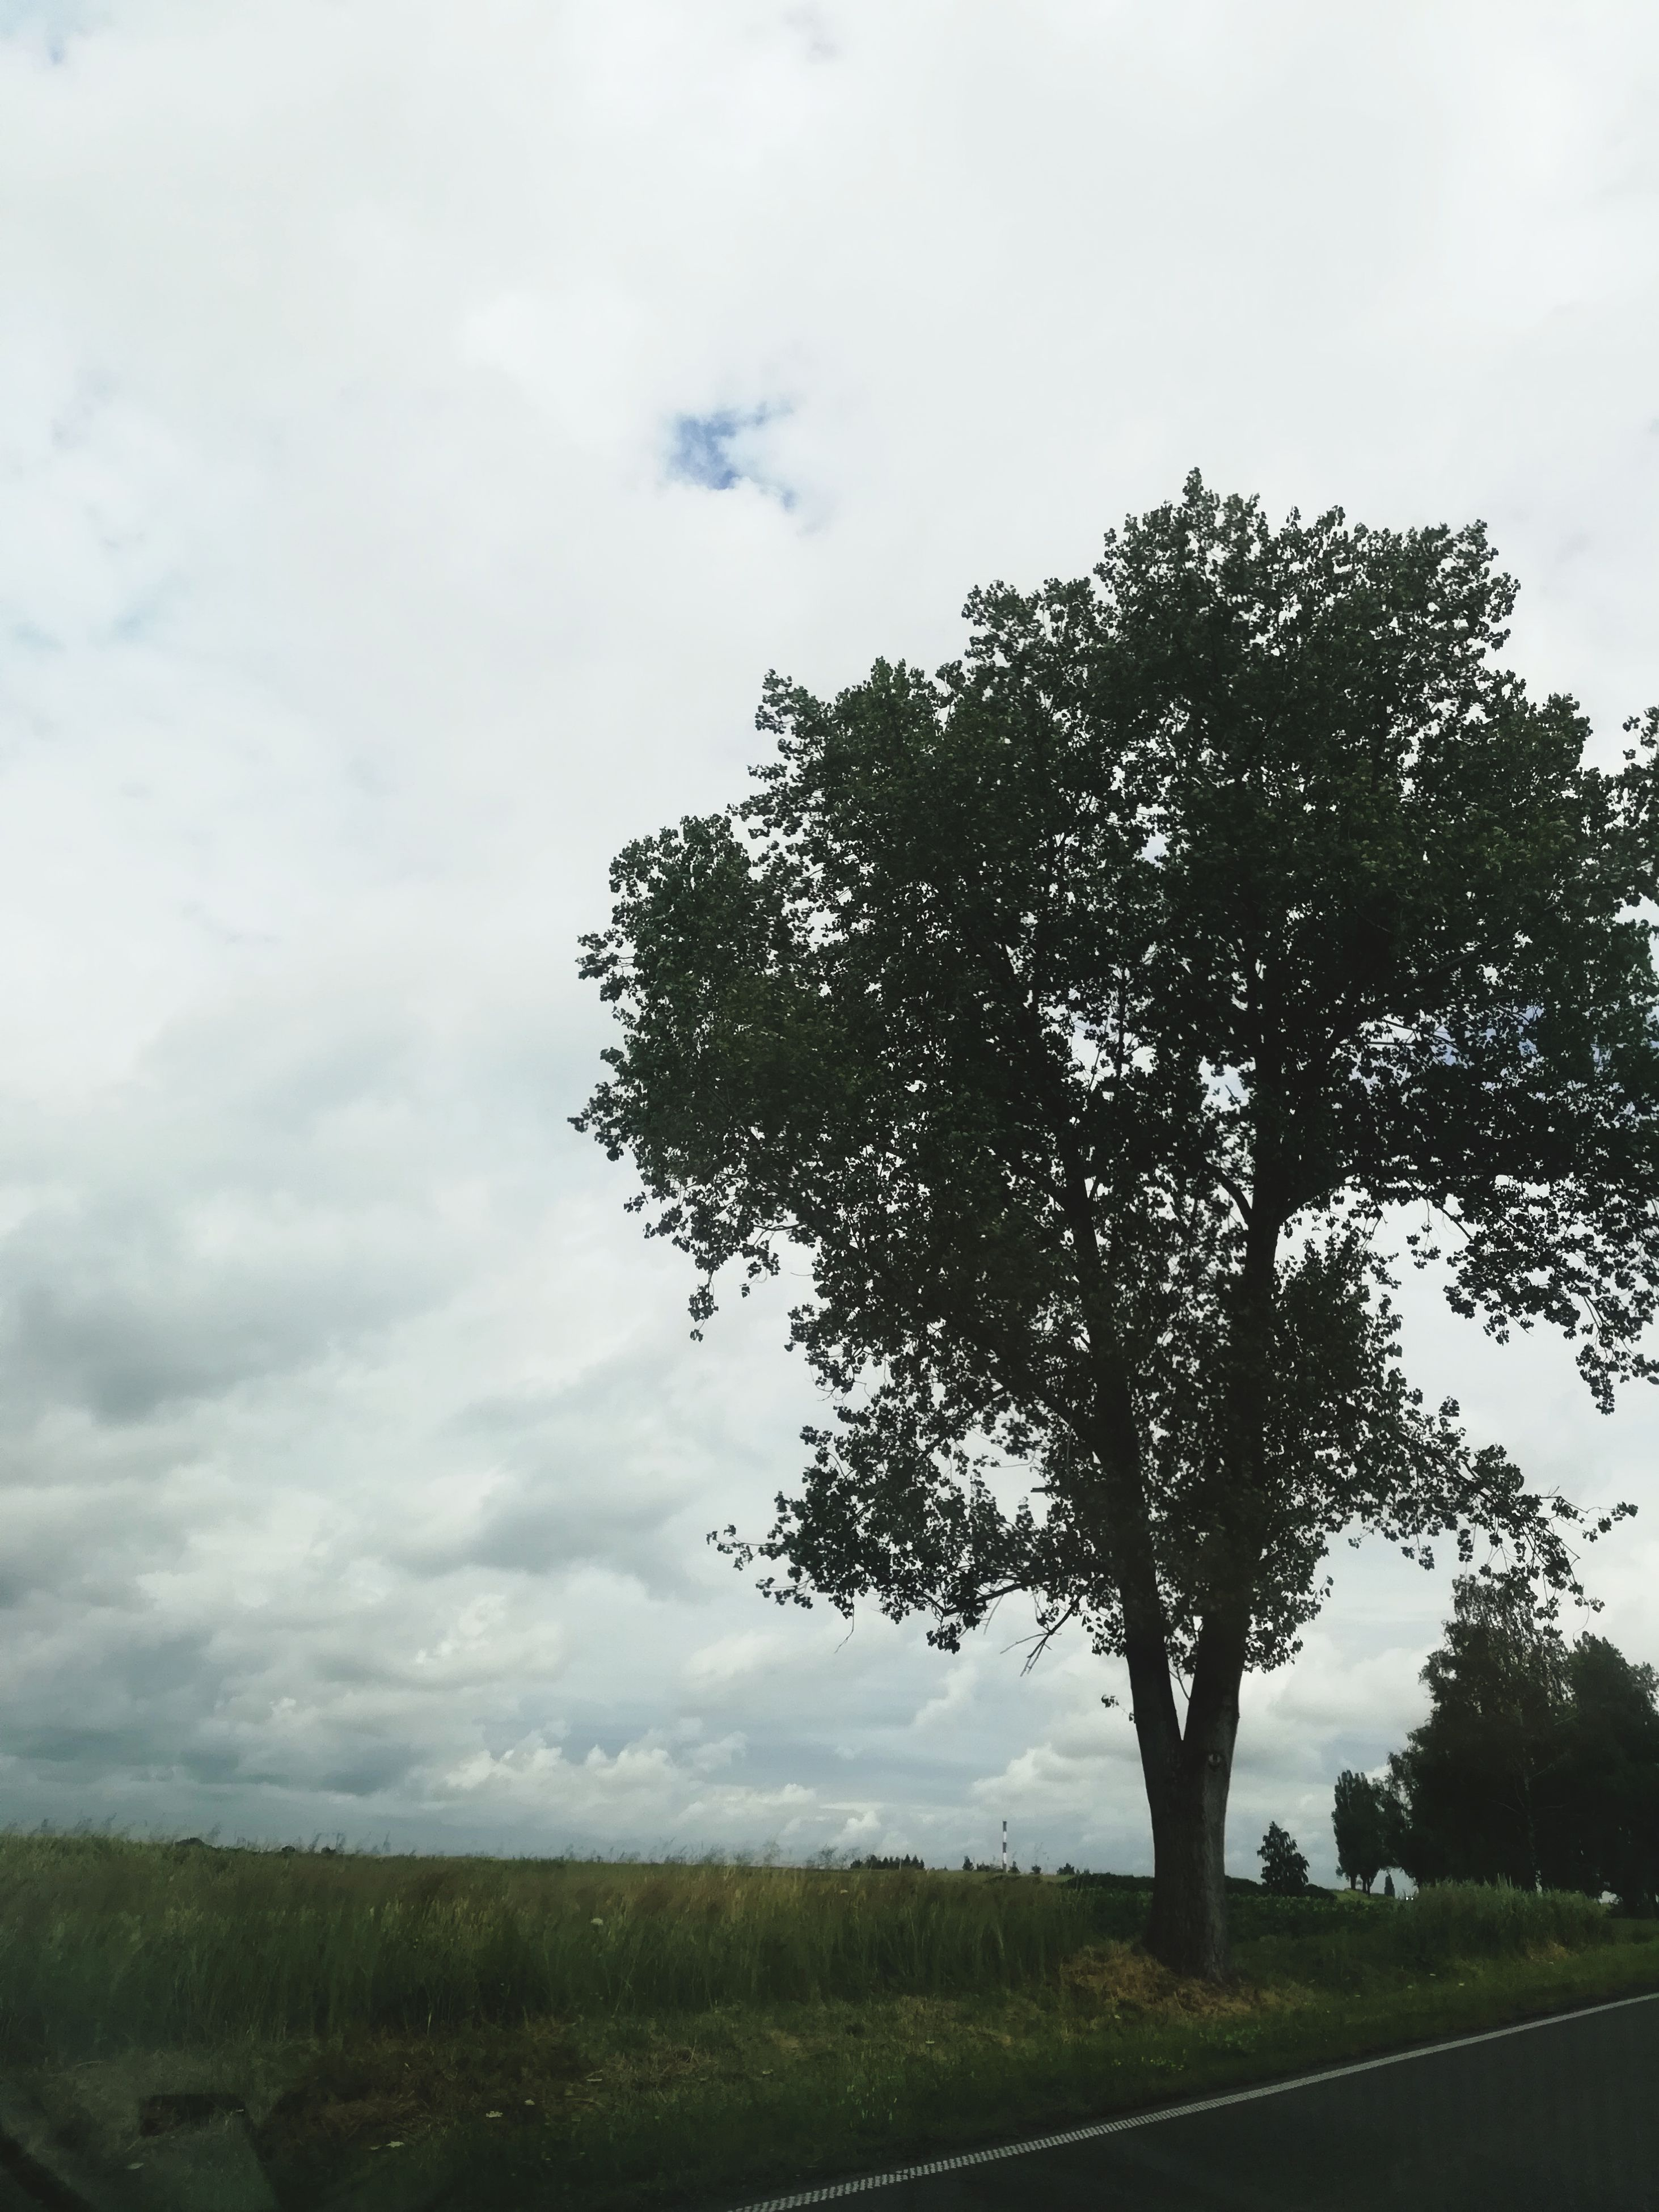 tree, sky, nature, cloud - sky, growth, landscape, tranquil scene, tranquility, scenics, beauty in nature, no people, day, outdoors, grass